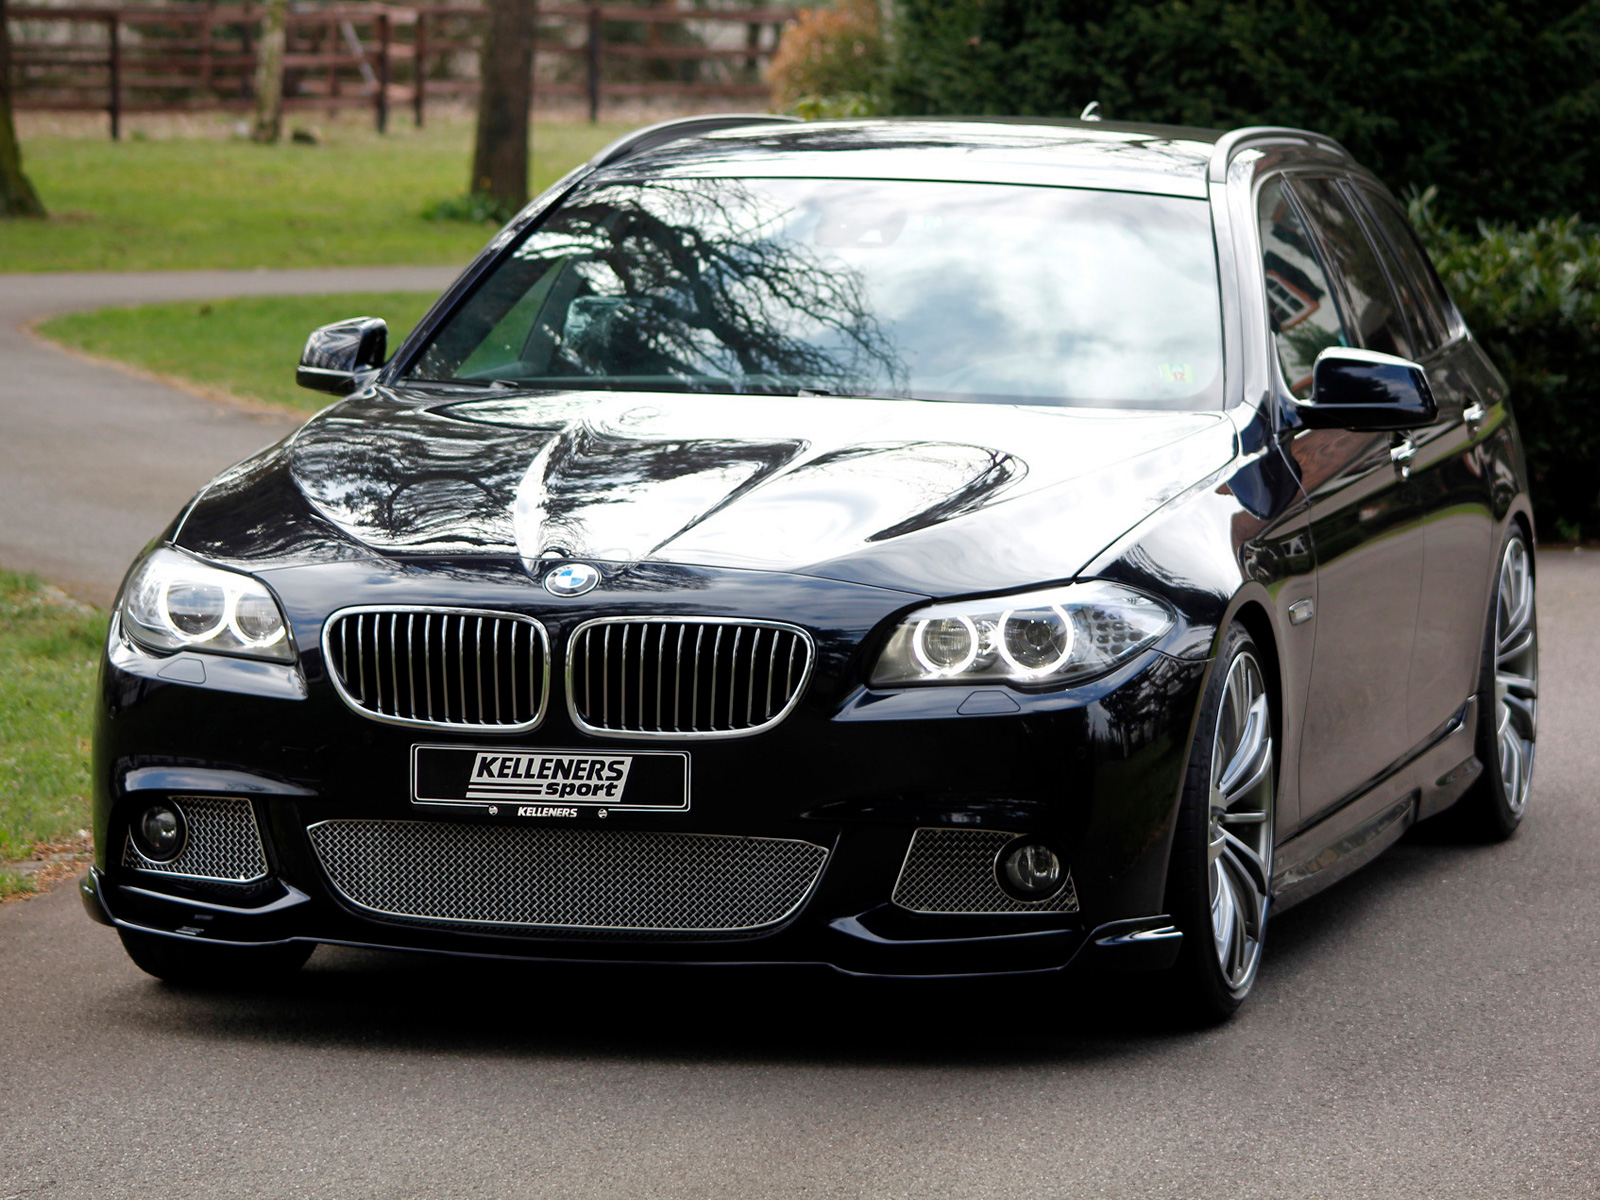 2012 kelleners sport bmw 5. Black Bedroom Furniture Sets. Home Design Ideas